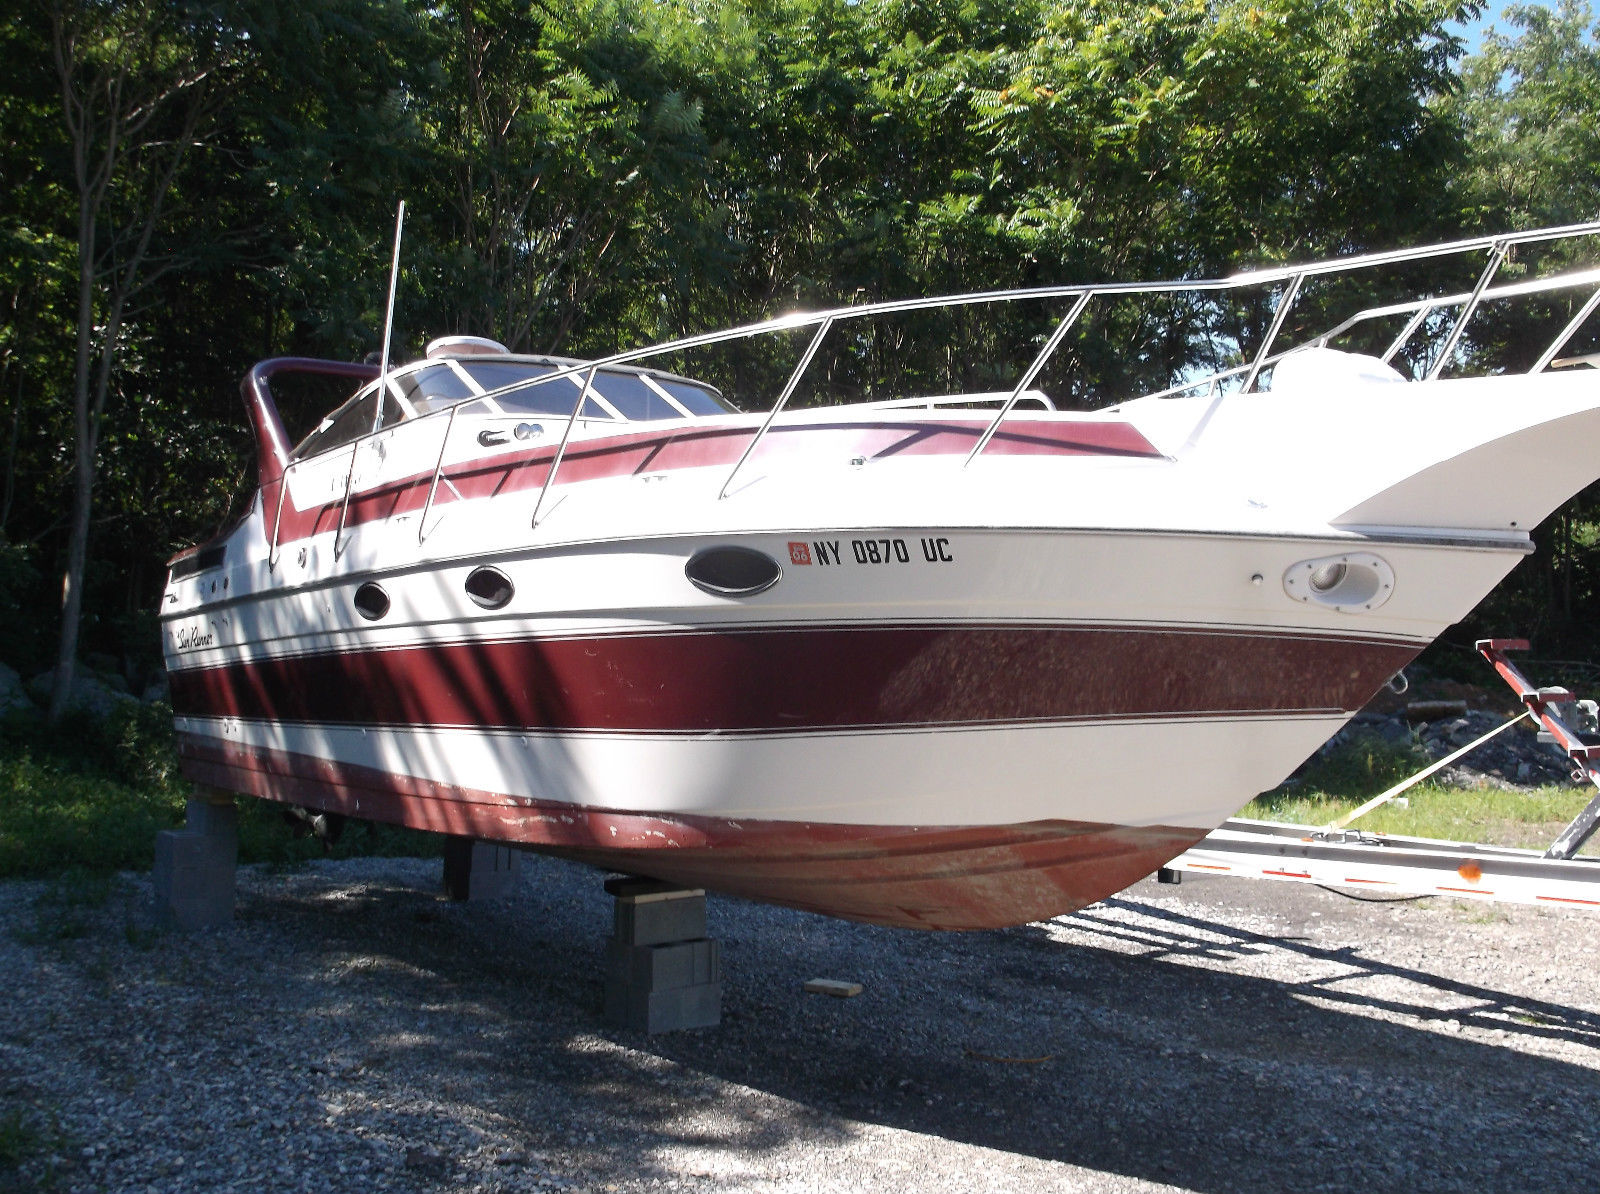 Sunrunner 292 Ultra 1989 For Sale For 3 600 Boats From